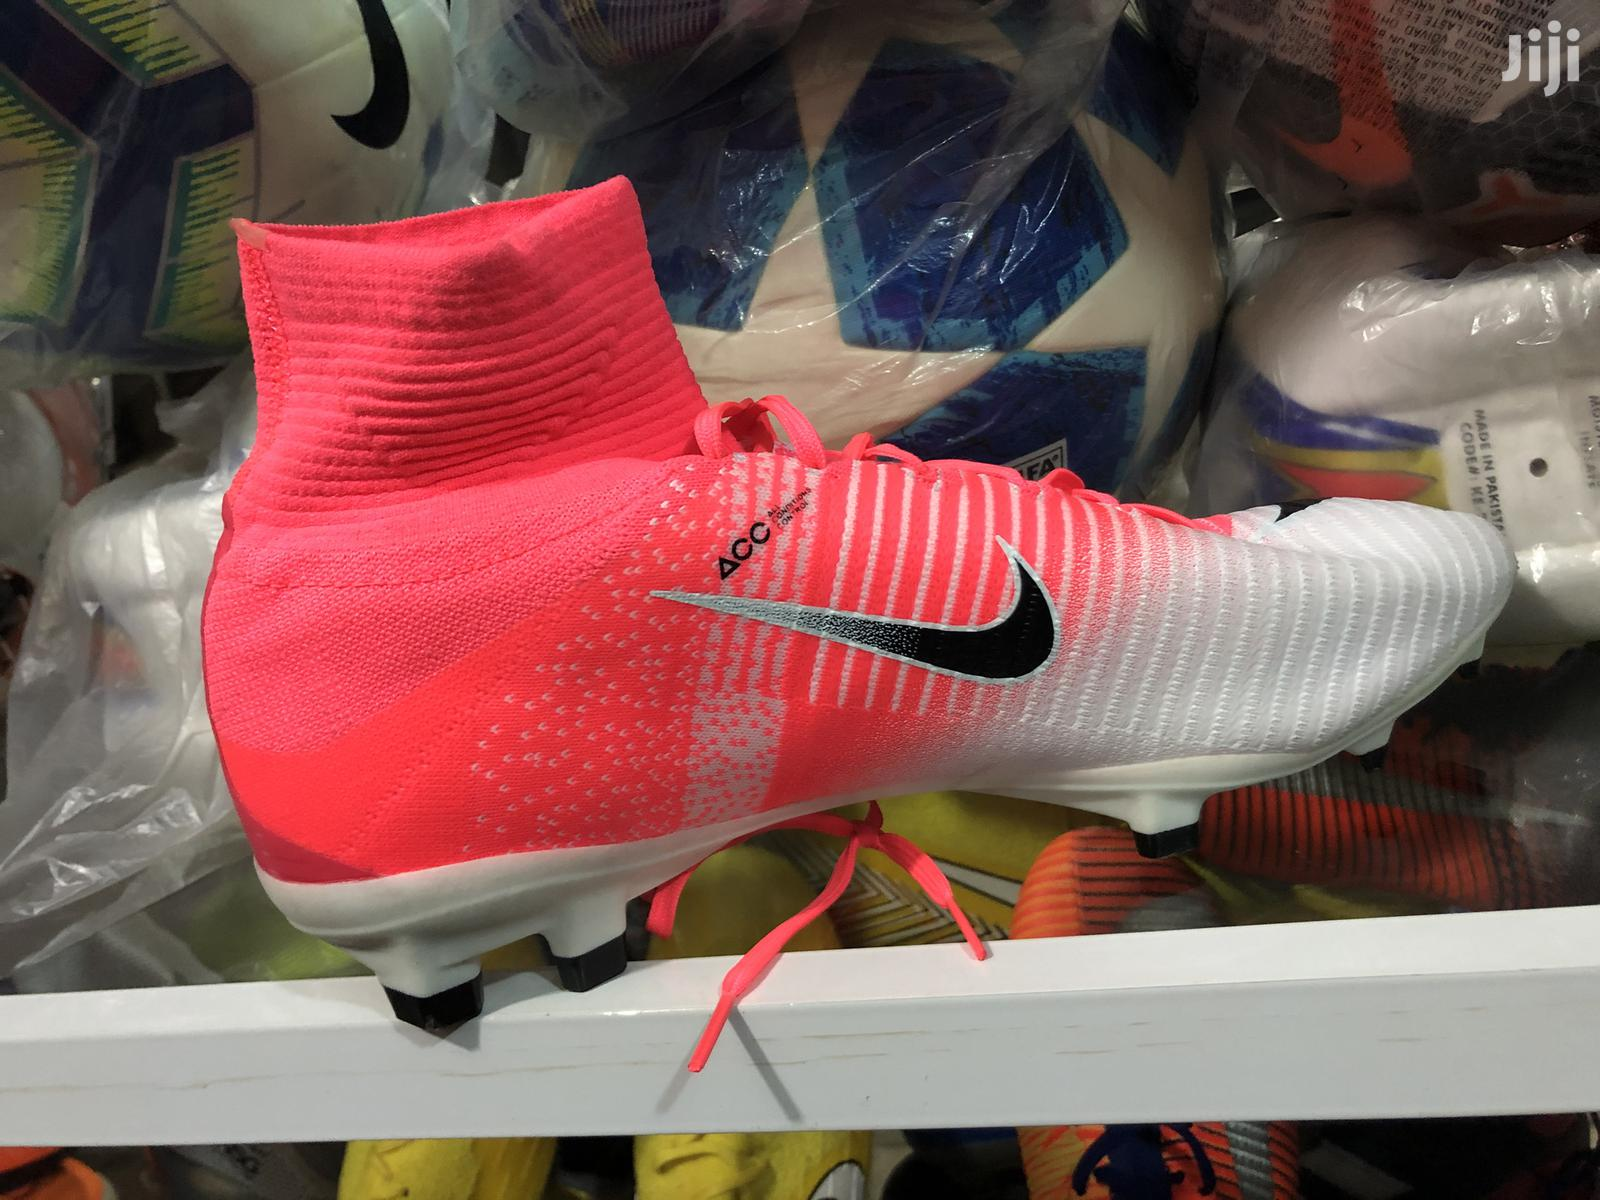 Original Nike Mercurial Football Boots. | Shoes for sale in Accra Metropolitan, Greater Accra, Ghana